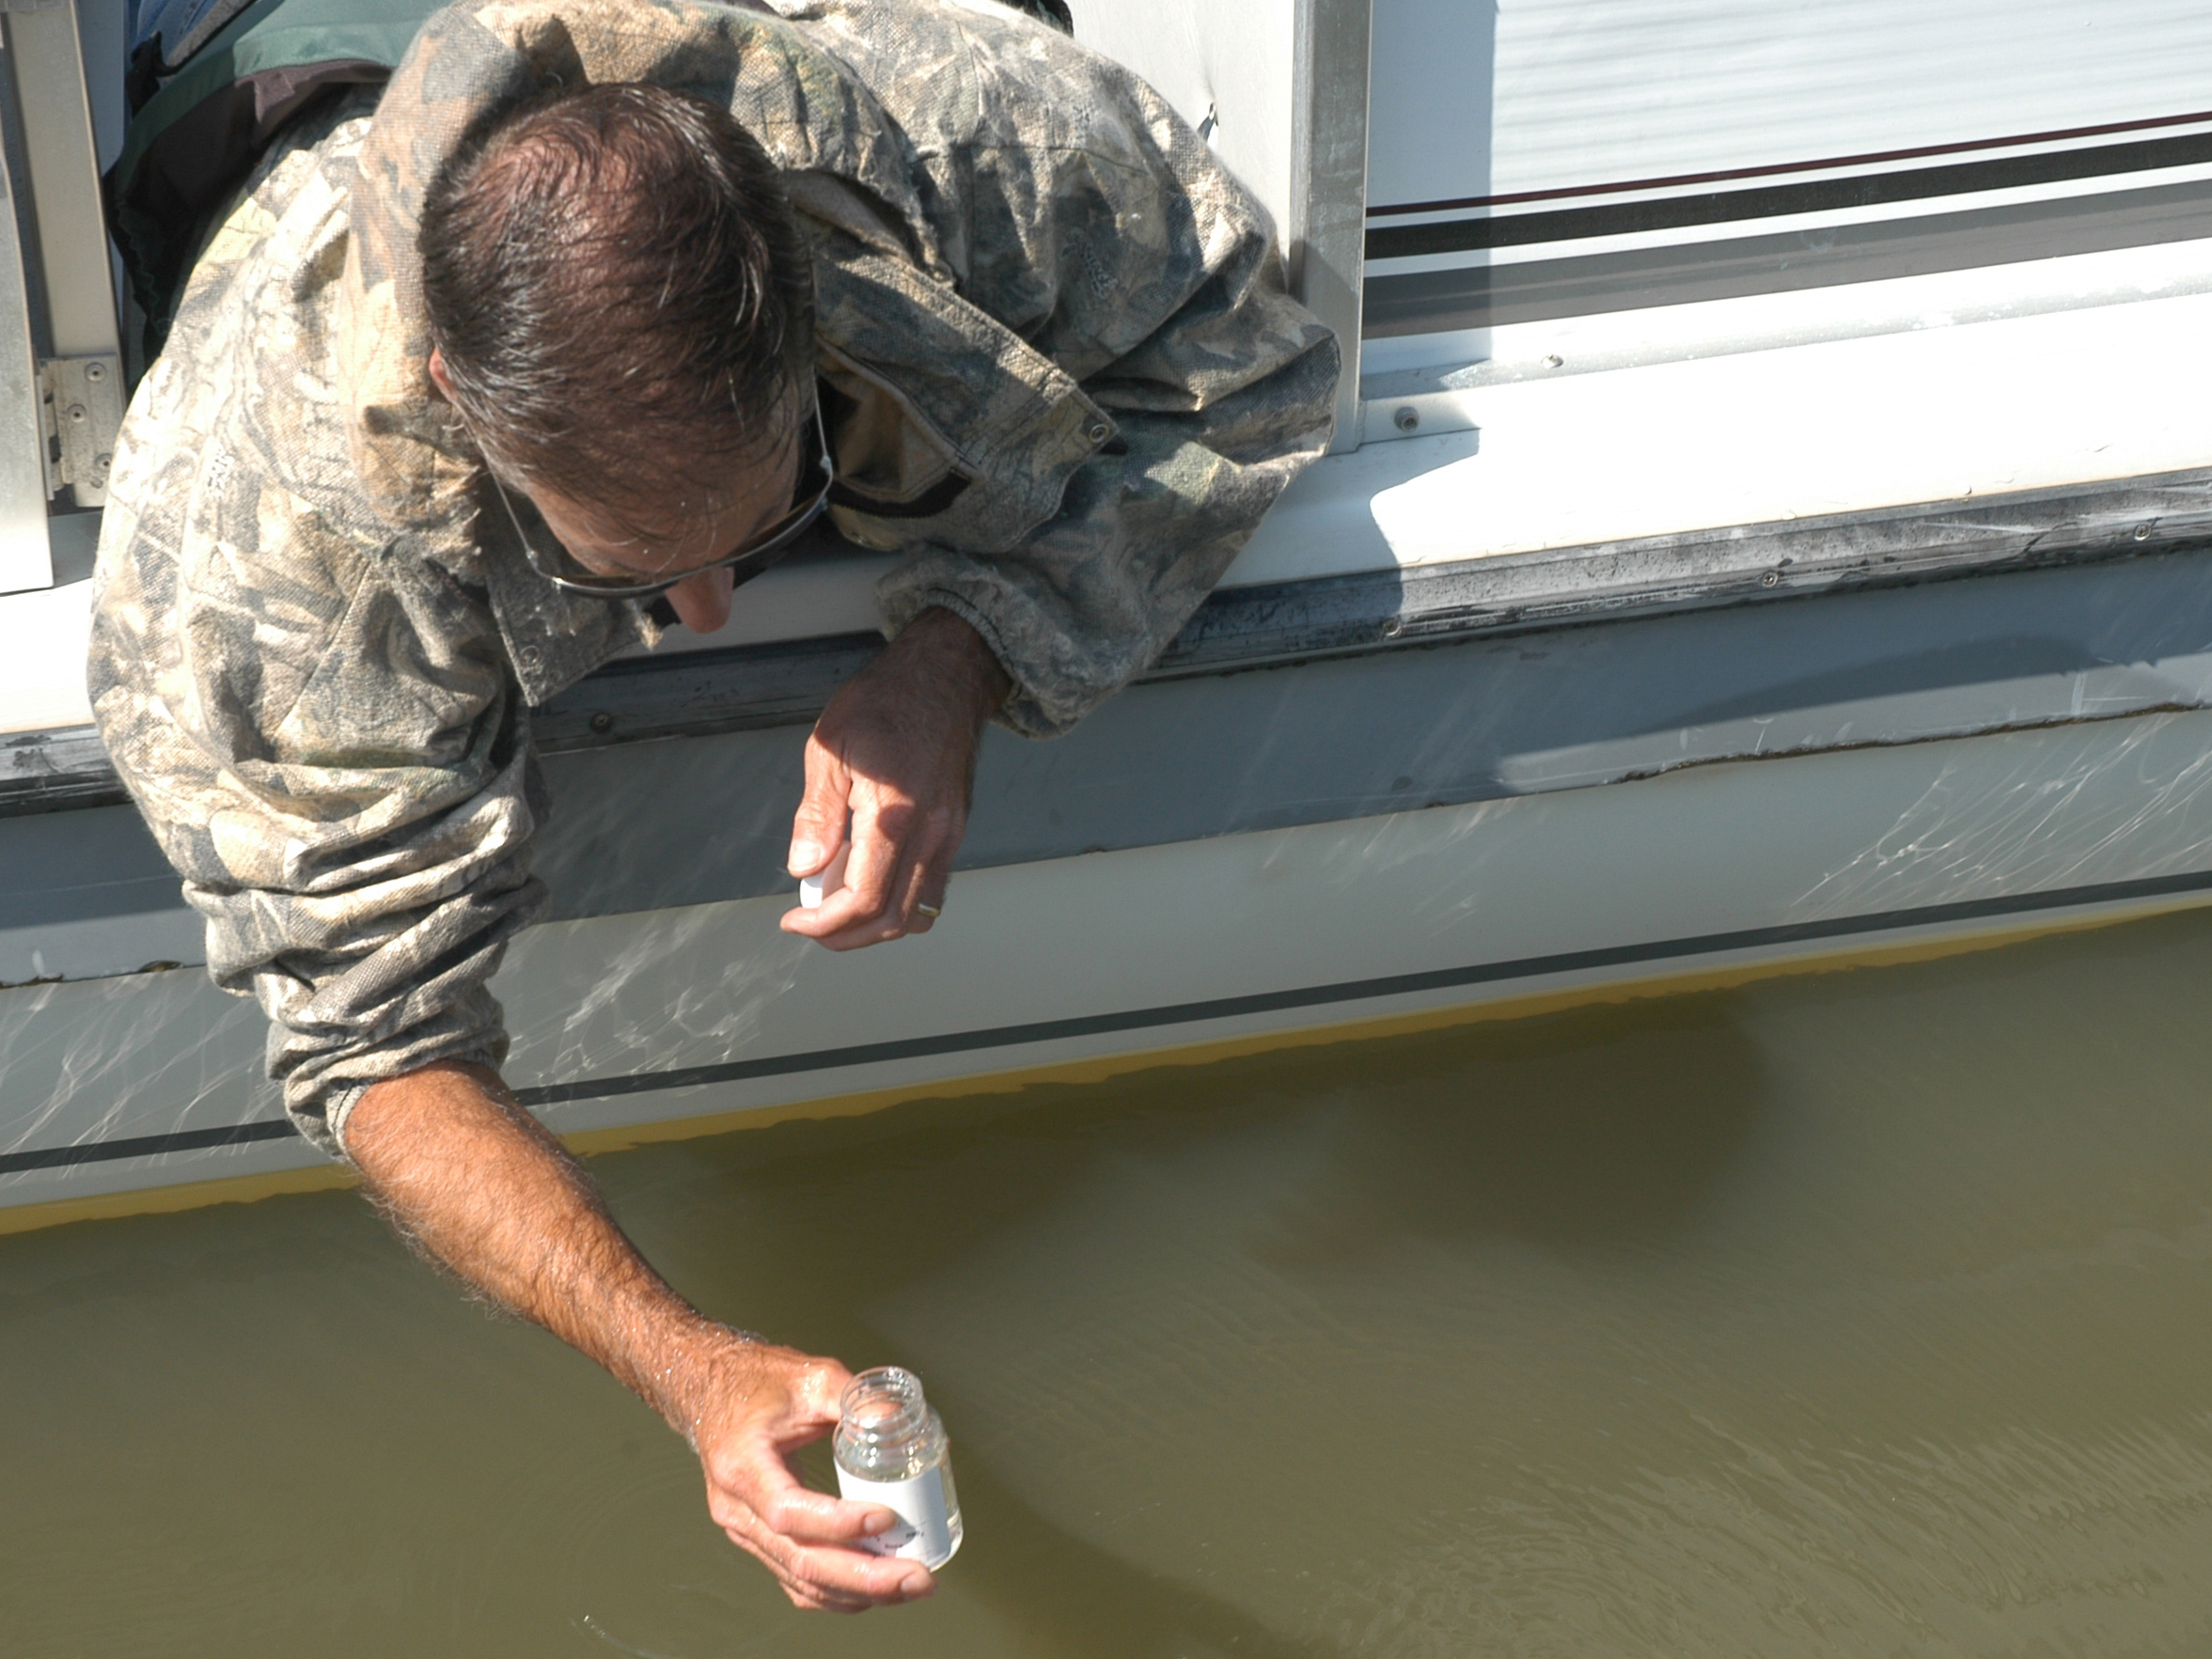 Greg Stoner, a state fisheries management biologist and advisor to the Lake of the Ozarks Watershed Alliance, collects a water sample from one of the lake's many coves.